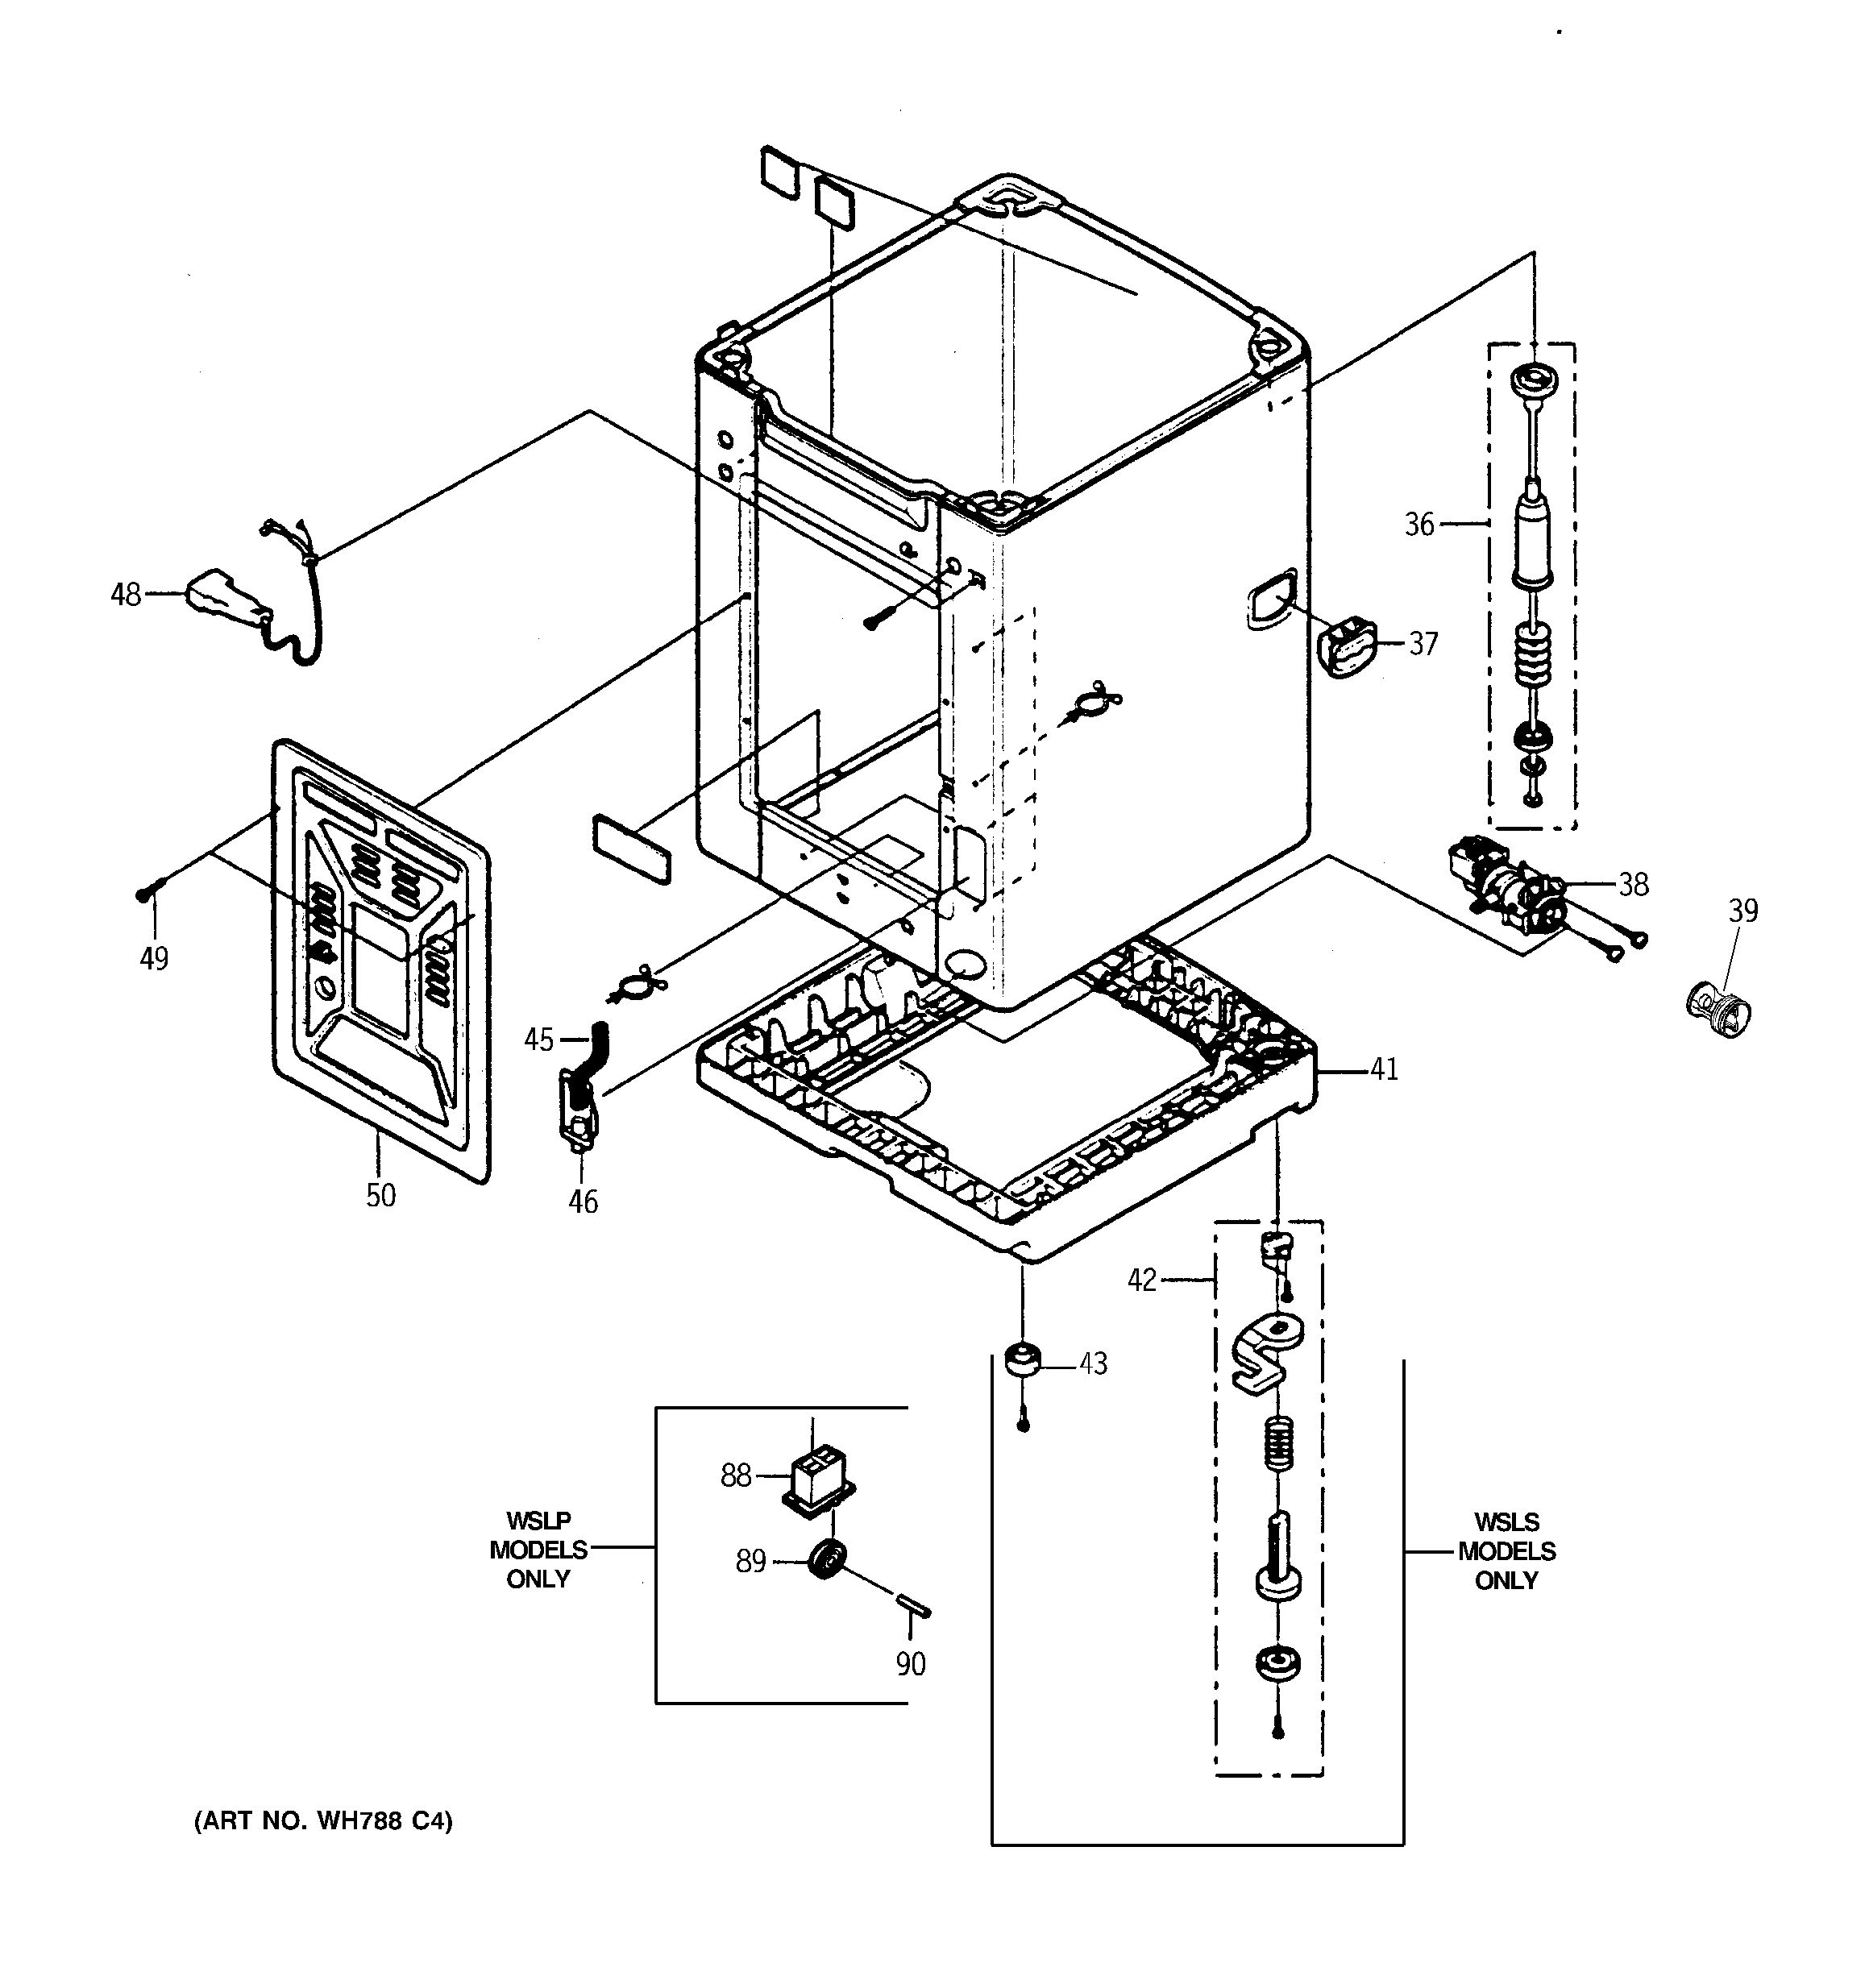 Assembly View For Cabinet Amp Base Wsls1100d0ww